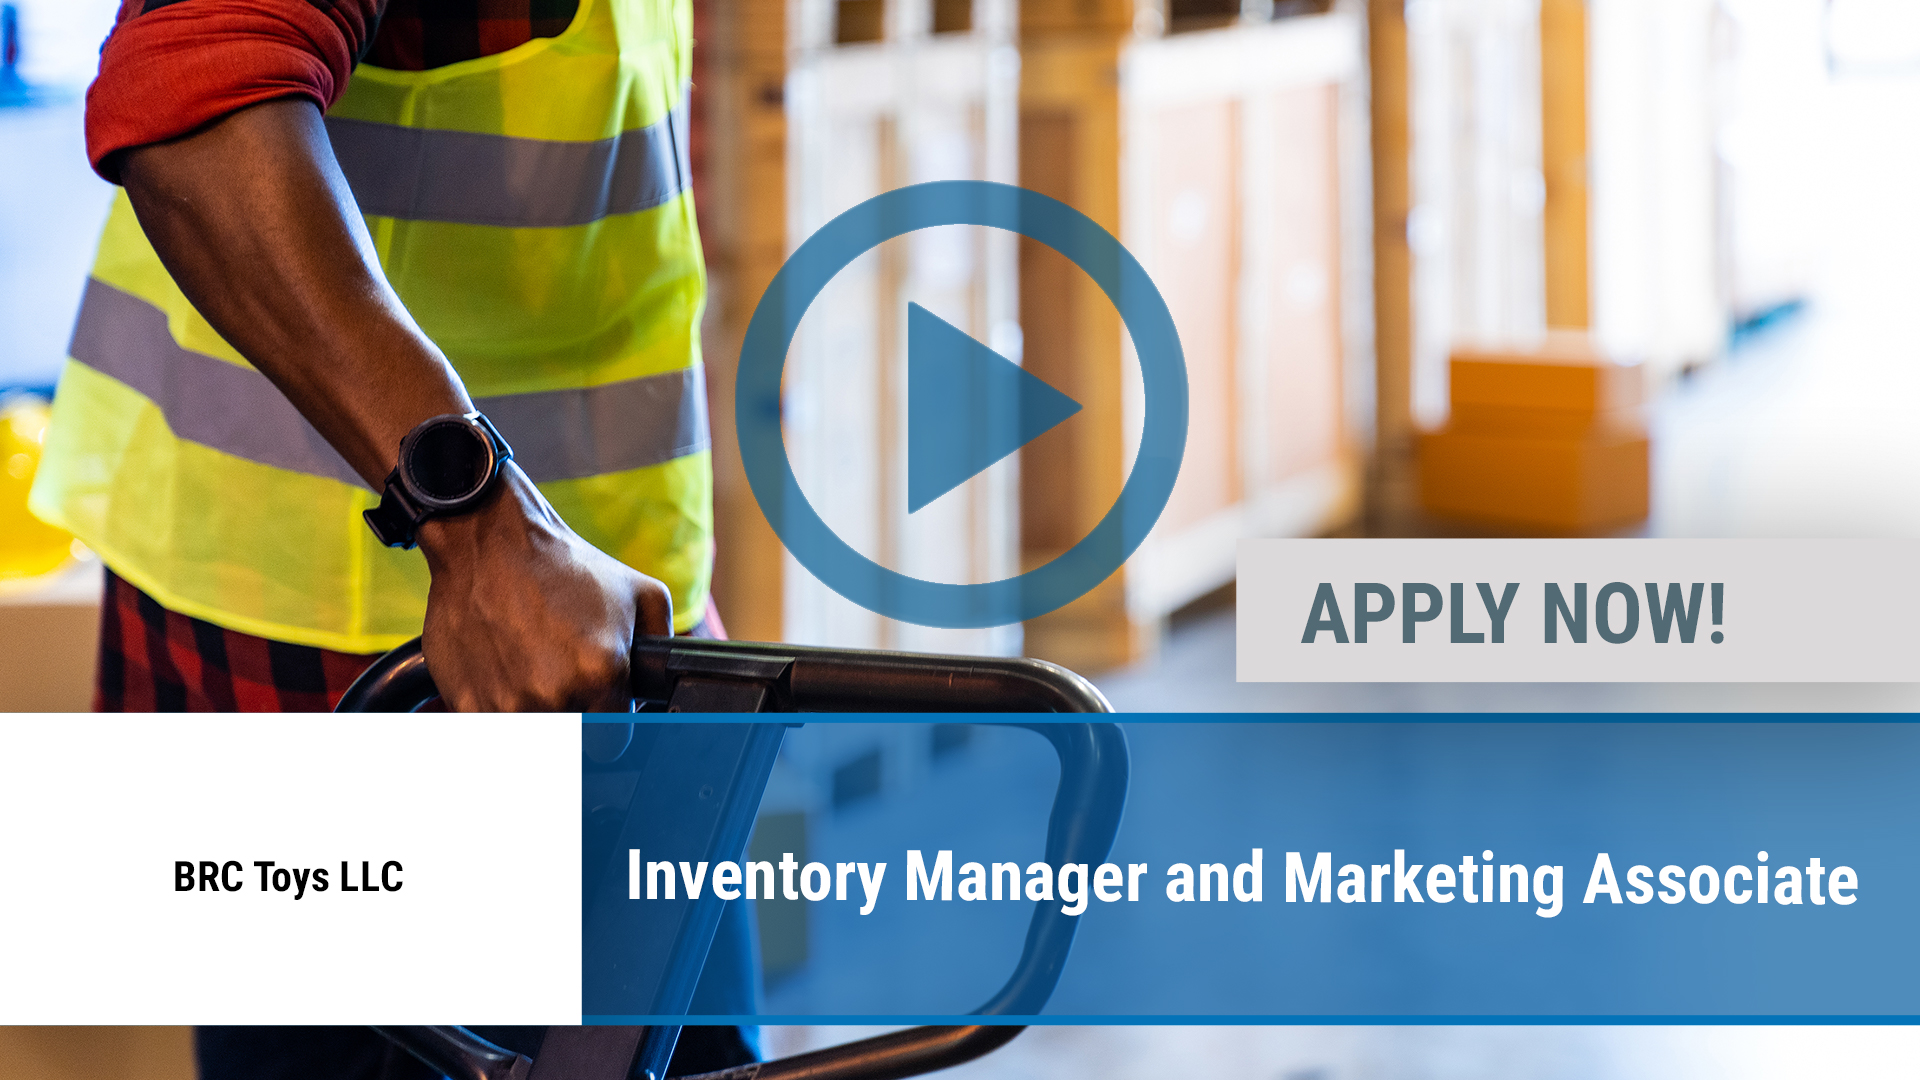 Watch our careers video for available job opening Inventory Manager and Marketing Associate in Dallas, TX